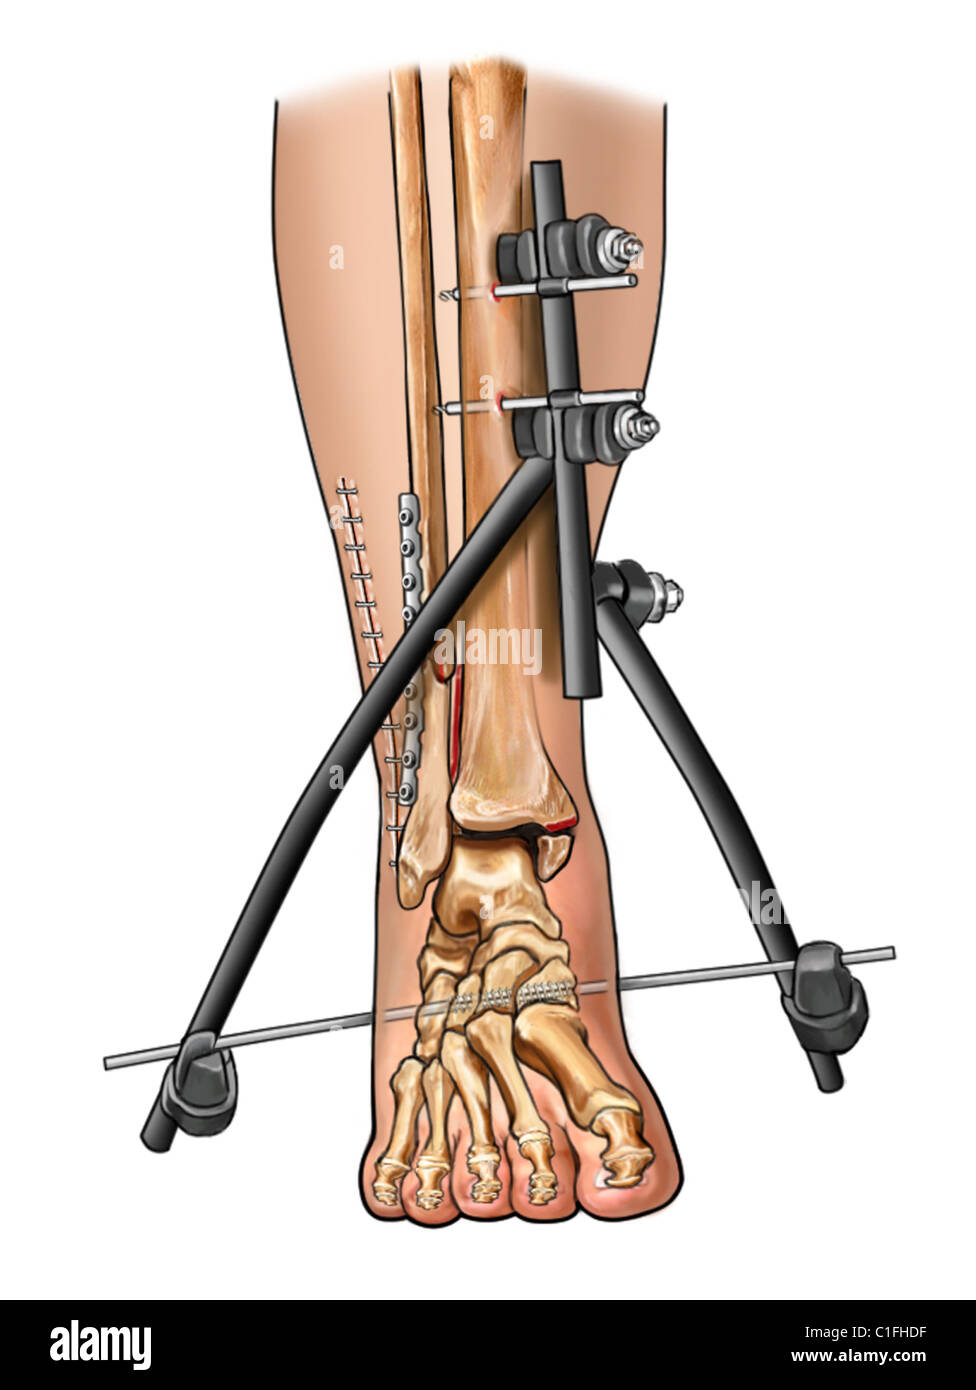 This medical illustration depicts the surgical fixation of comminuted fibular fracture. - Stock Image